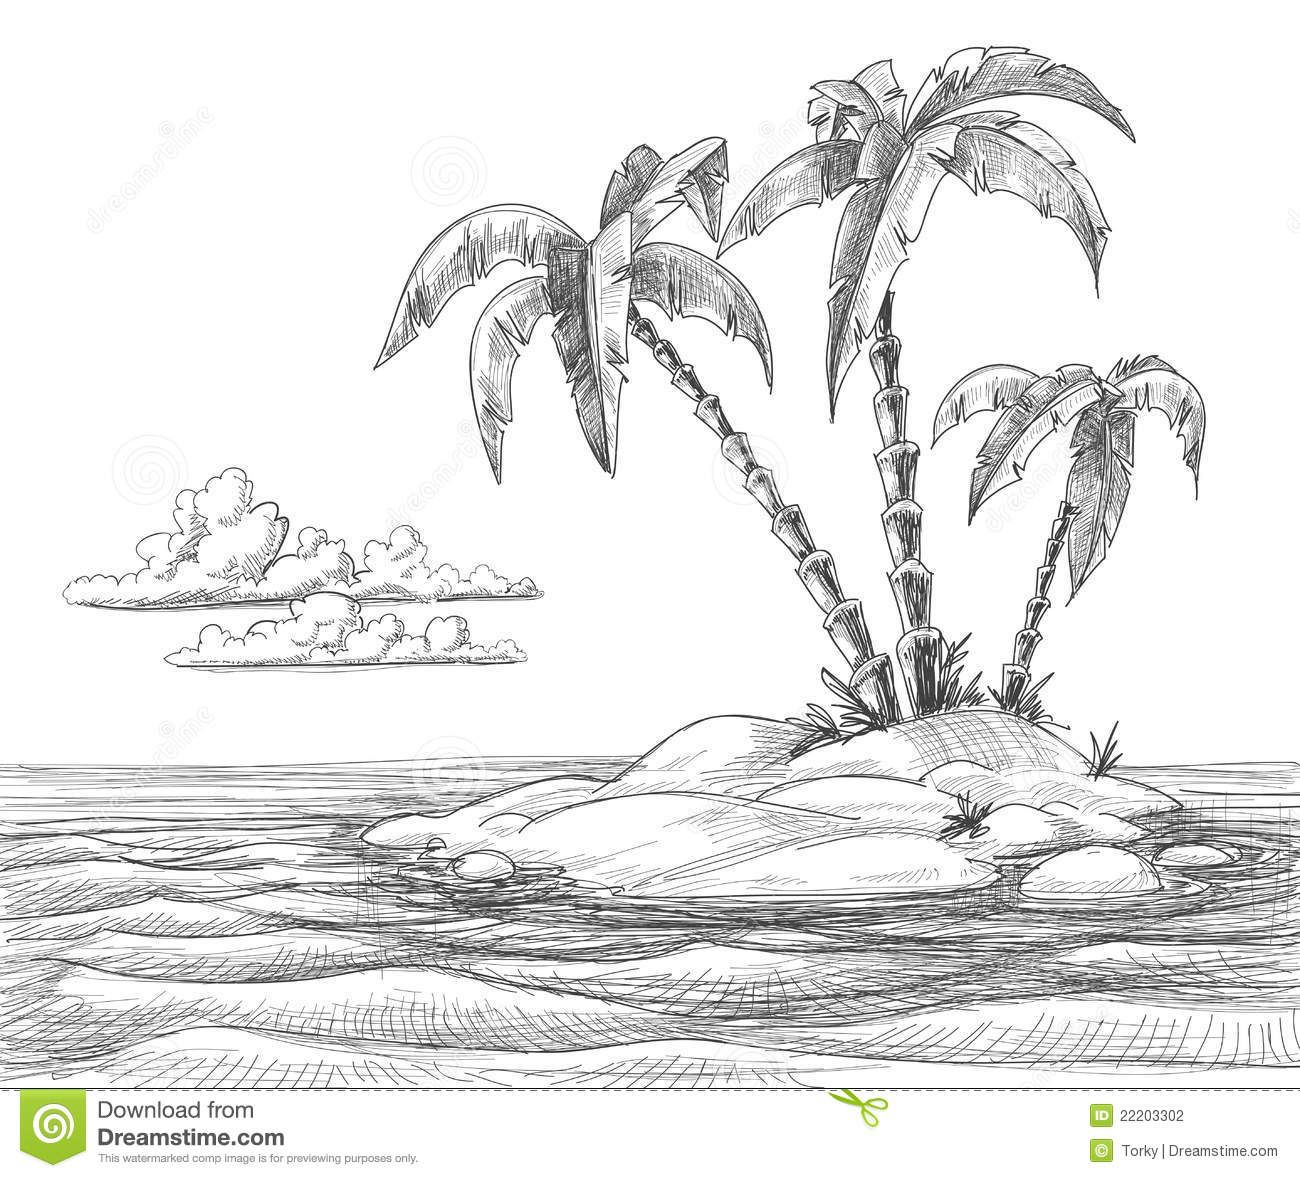 Ocean Landscape Pencil Drawings